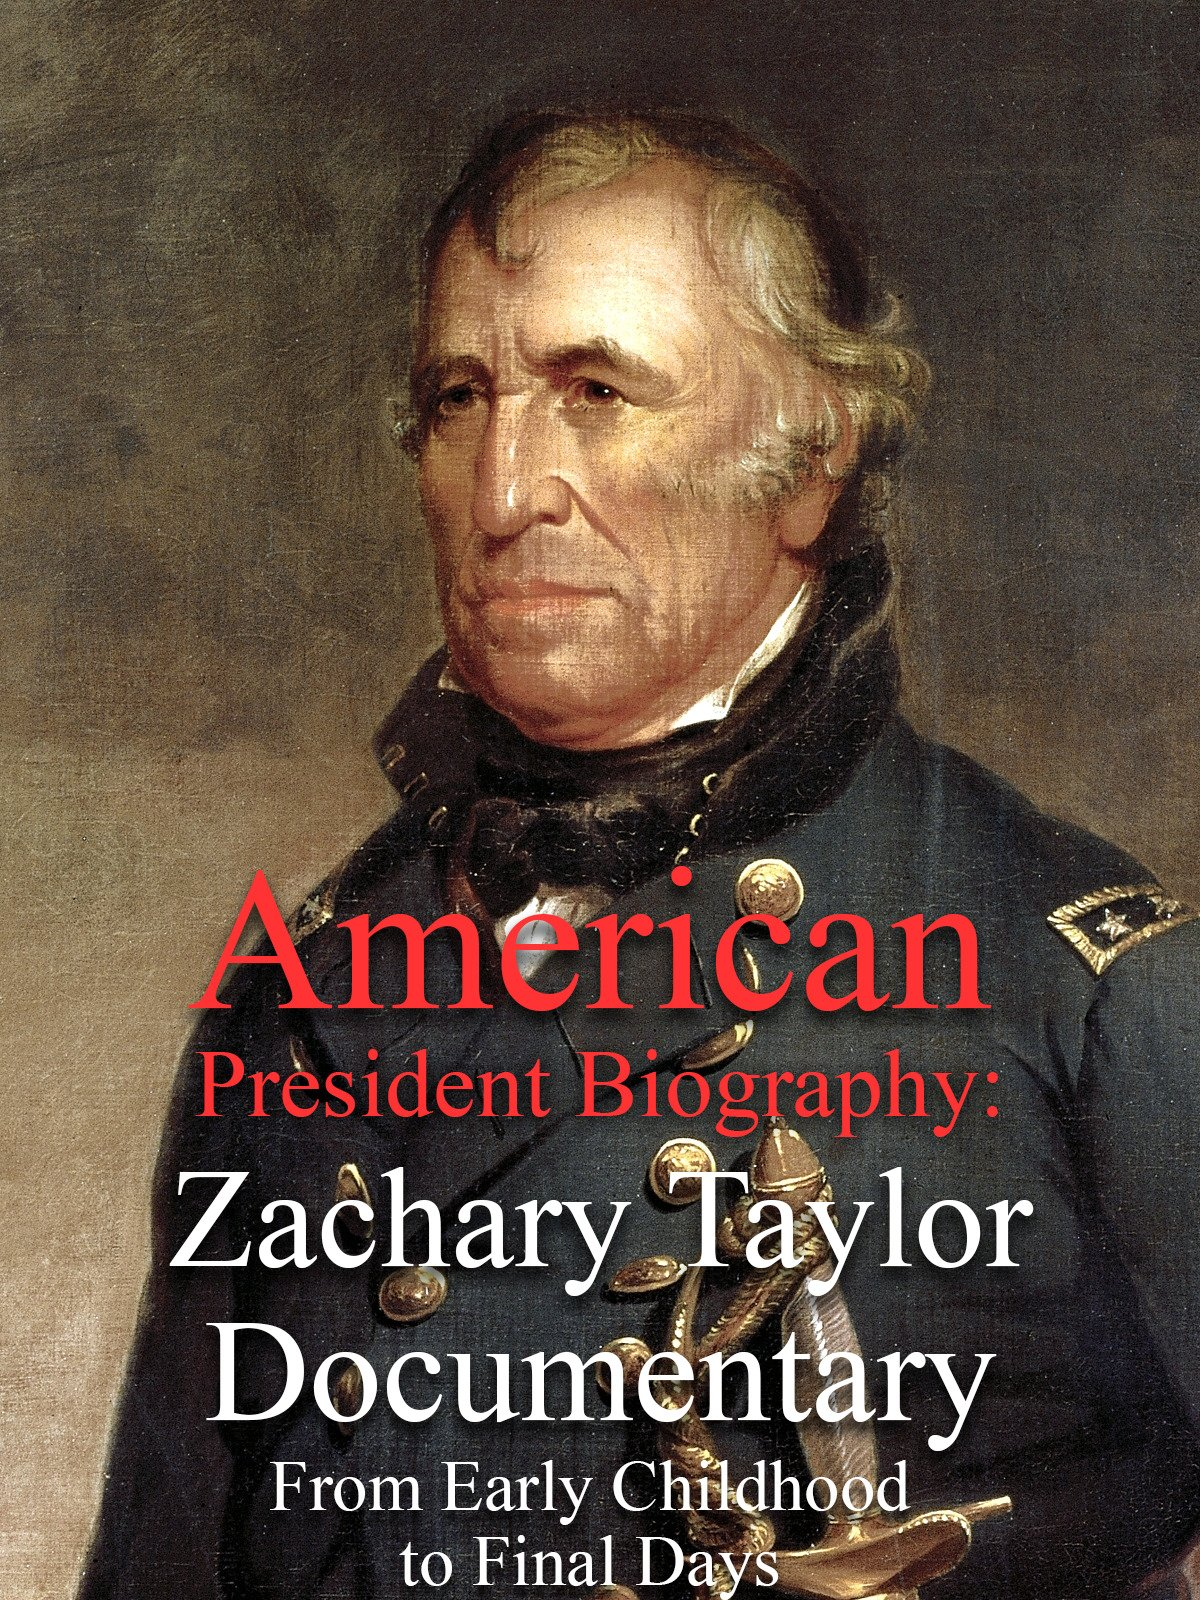 American President Biography: Zachary Taylor Documentary From Early Childhood to Final Days